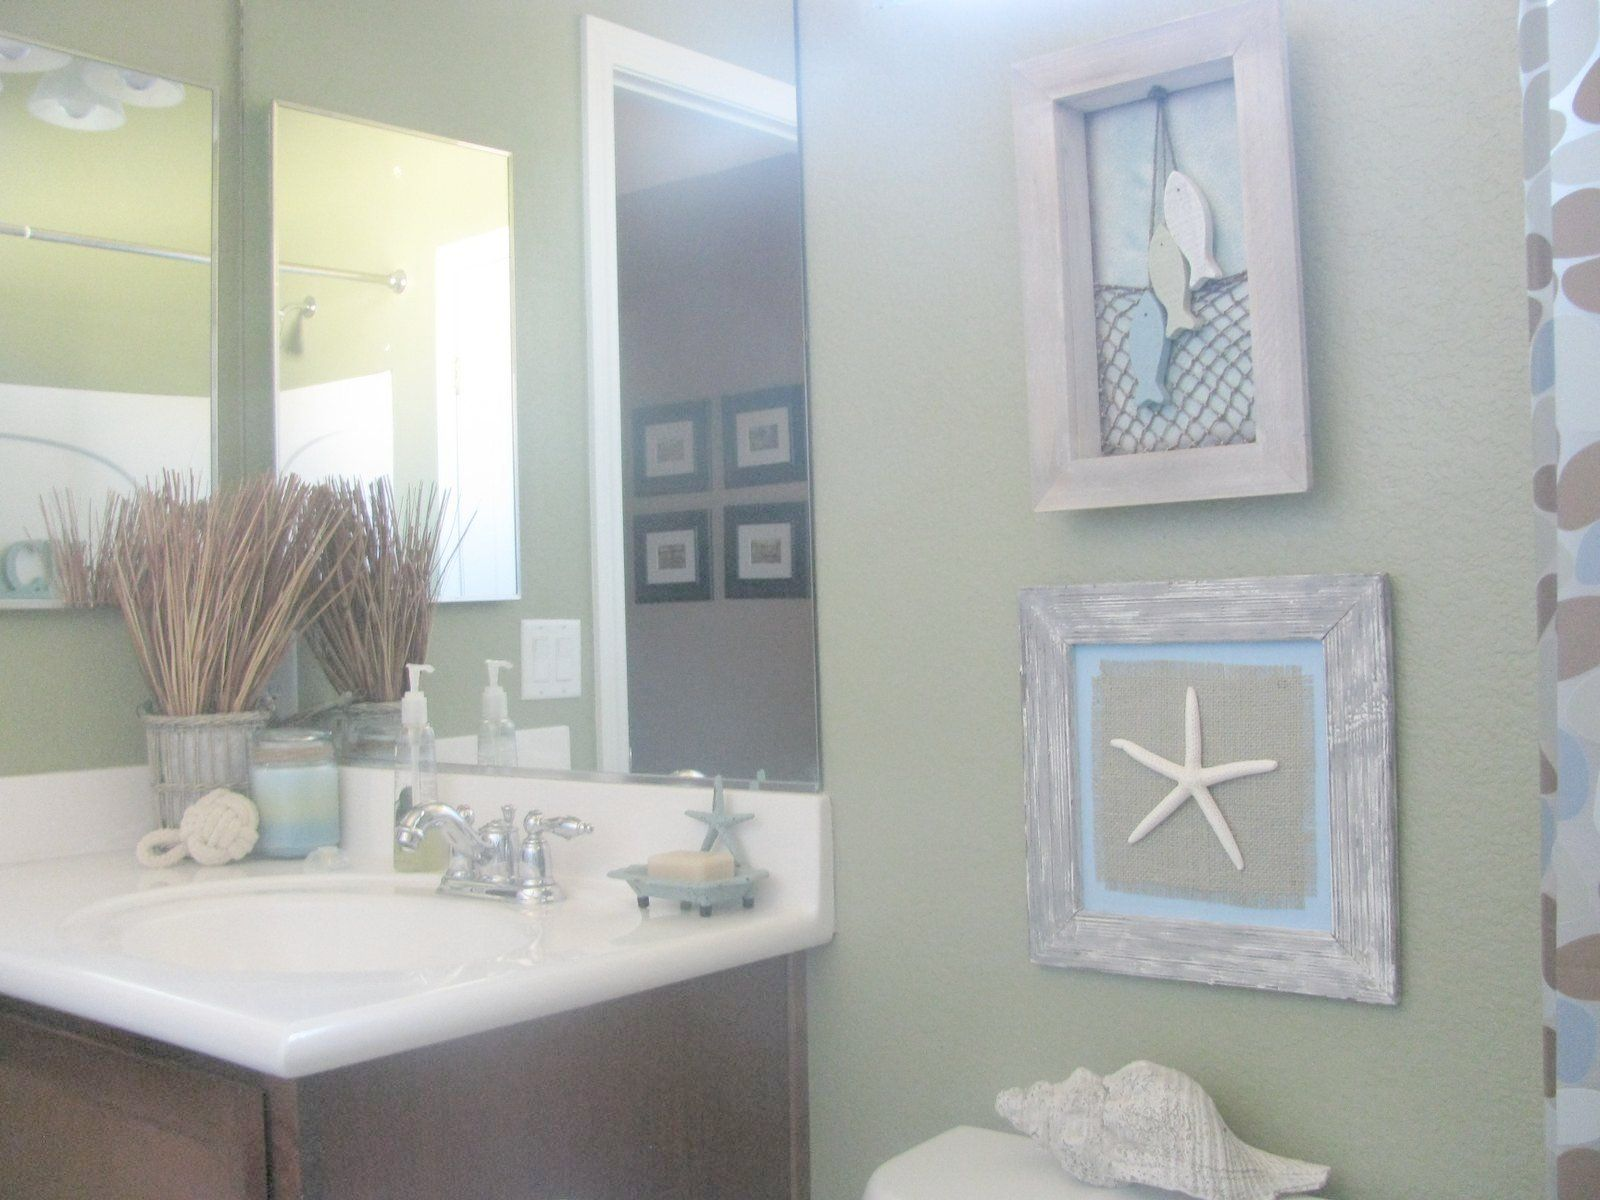 Coastal Bathroom Tile Ideas: Sand Colored Bathroom With Light Color (sea Glass Green